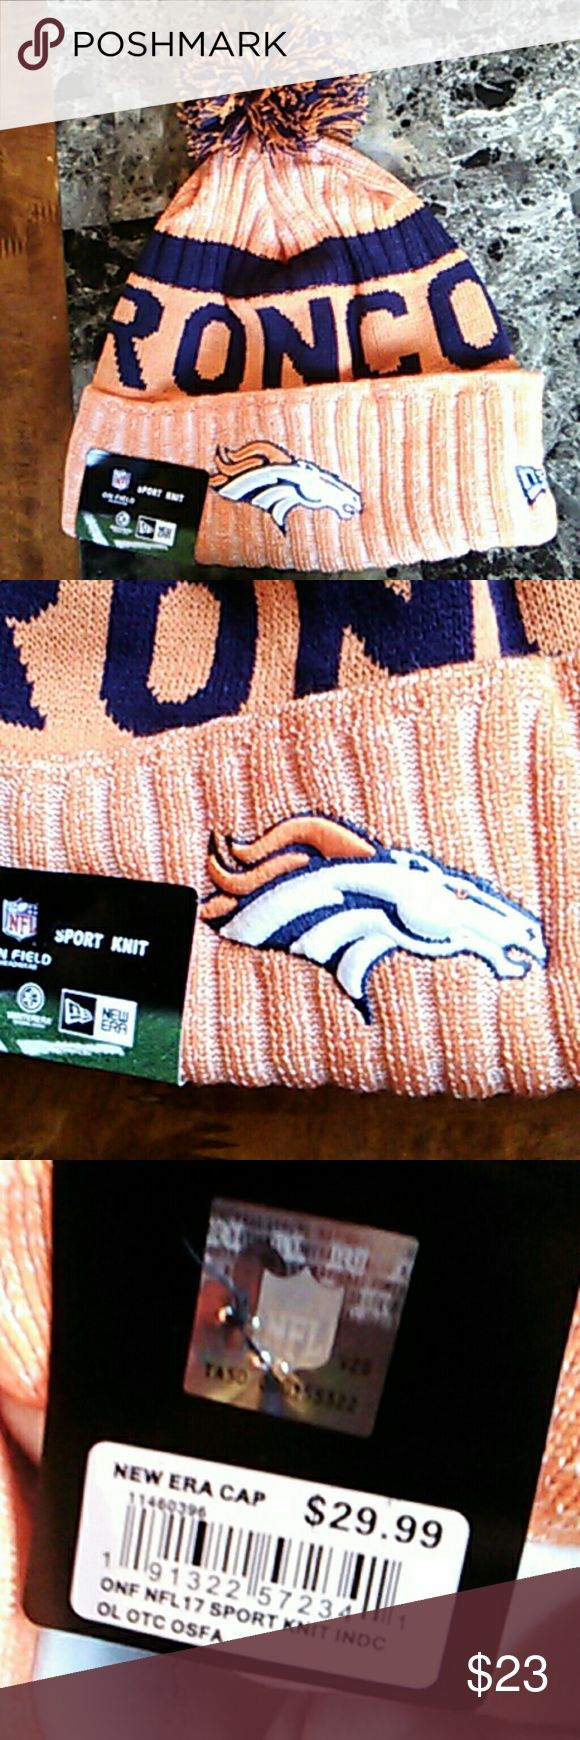 New Era NFL Broncos Beanie New. Never Used. Perfect for Cold Nights.  Ships ASAP New Era Accessories Hats